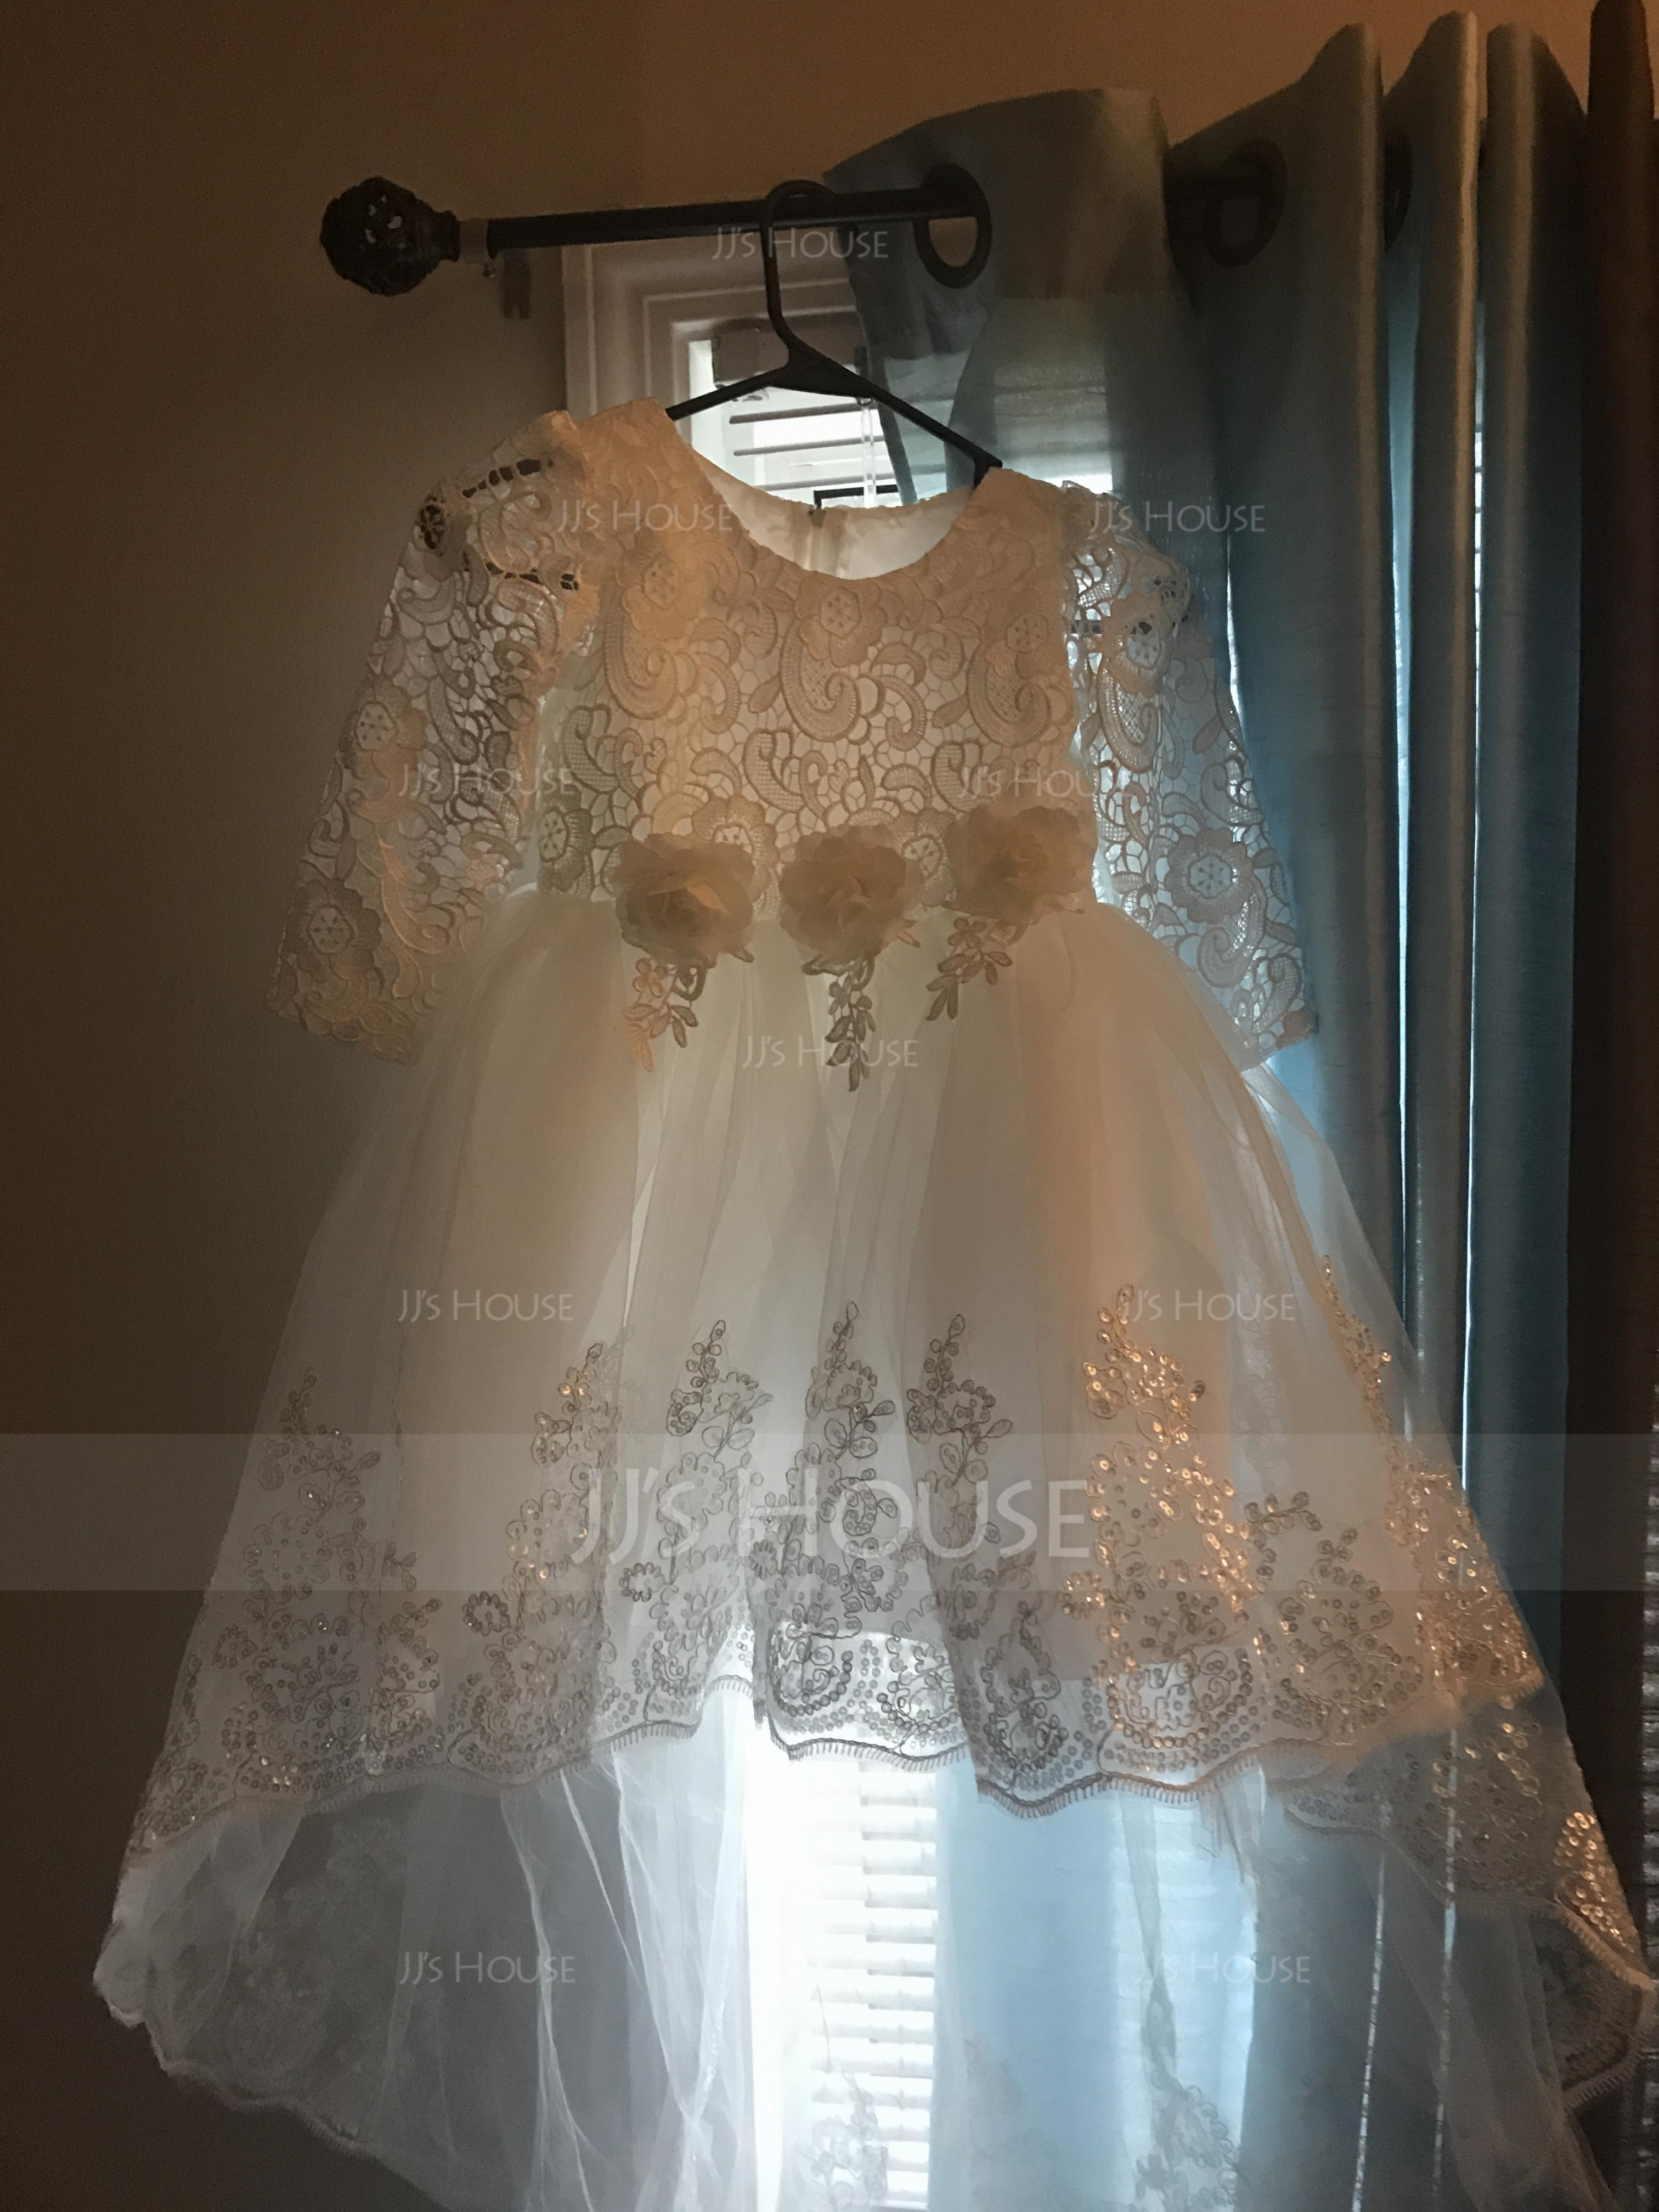 A-Line/Princess Knee-length/Asymmetrical Flower Girl Dress - Cotton Blends Long Sleeves Scoop Neck With Lace/Flower(s)/Sequins (010087486)